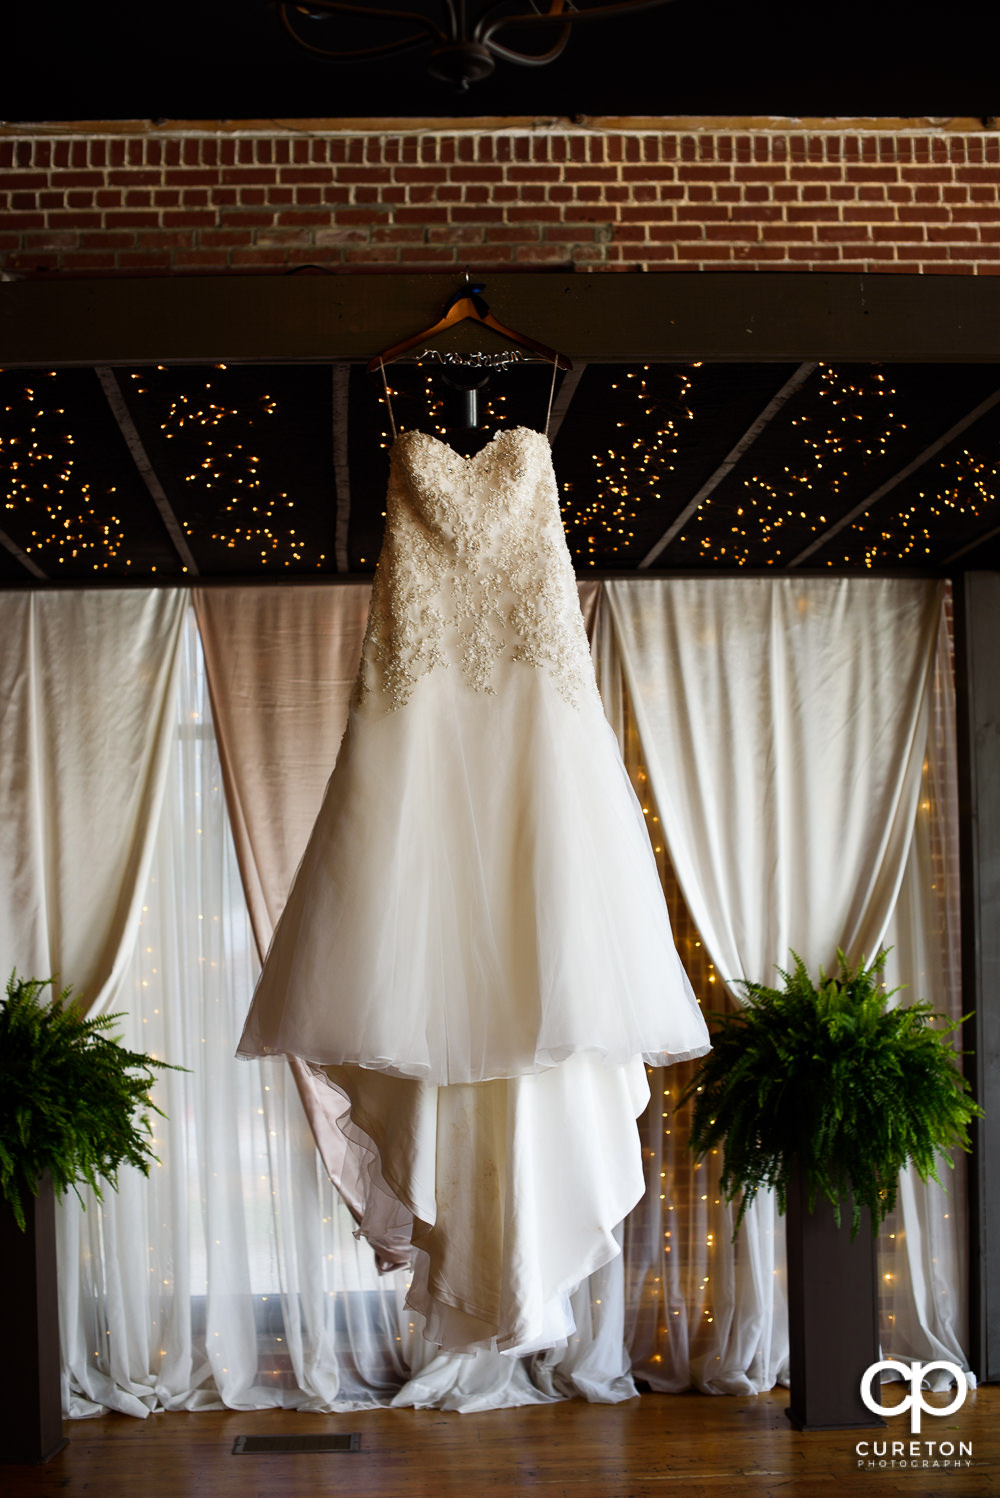 Bride's dress hanging on the alter.